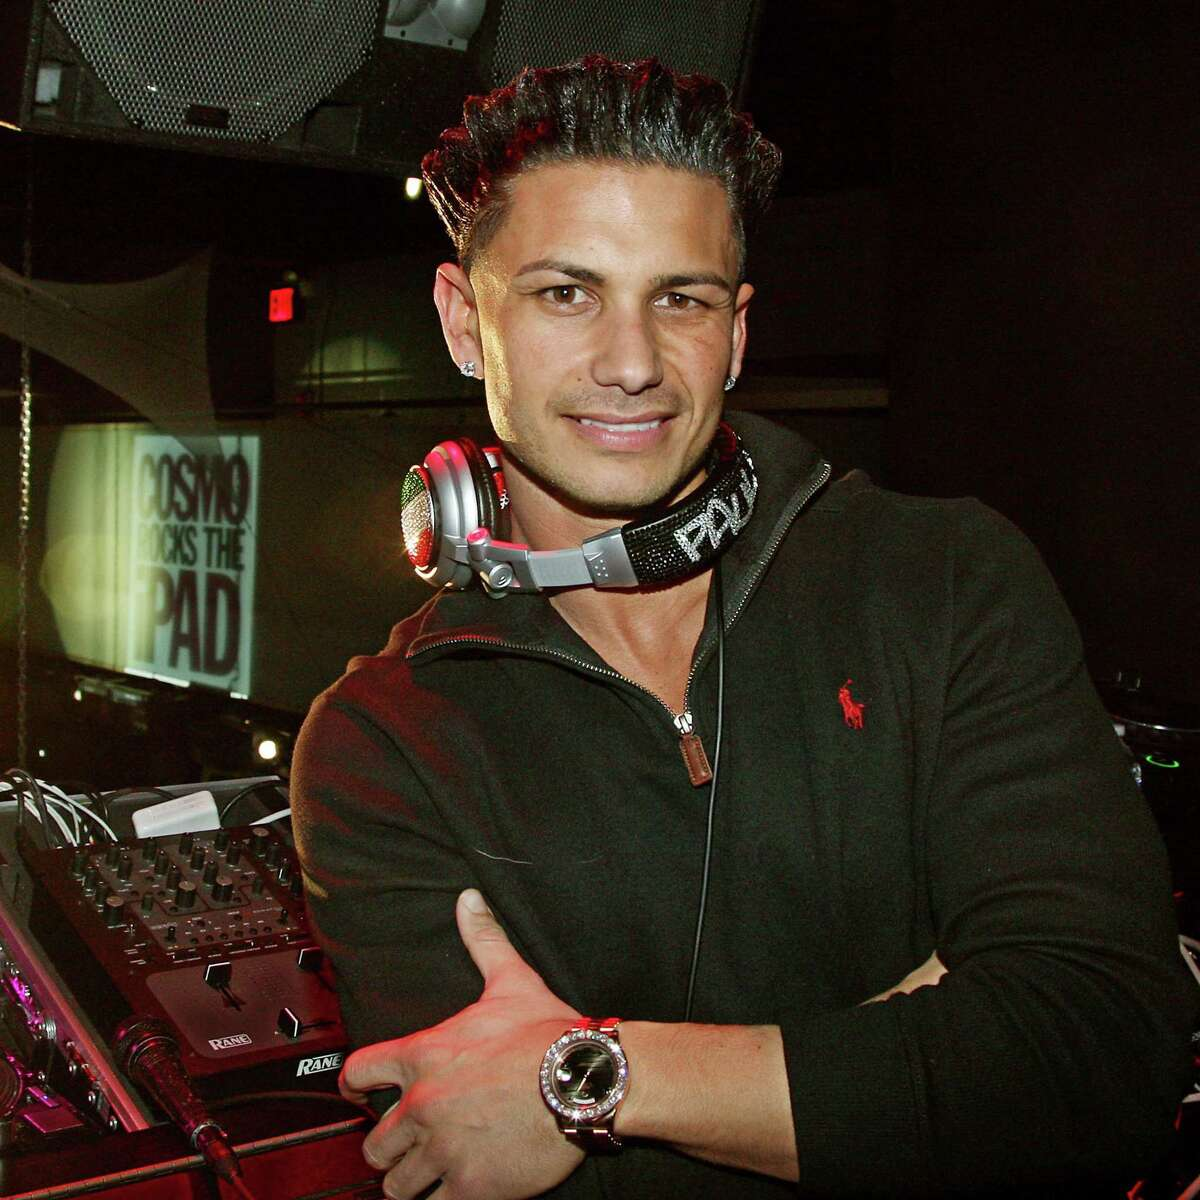 """In this photo released by StarPix, Paul Delvecchio, who is ?""""Pauly D,?"""" on MTV?'s ?""""Jersey Shore,?"""" takes a break from his disc jockey duty to pose for a photo at a party for the new Cosmopolitan magazine iPad app, Wednesday, March, 23, 2011 in New York. Delvecchio is the spokesperson for the app launch. (AP Photo/Starpix, Amanda Schwab)"""